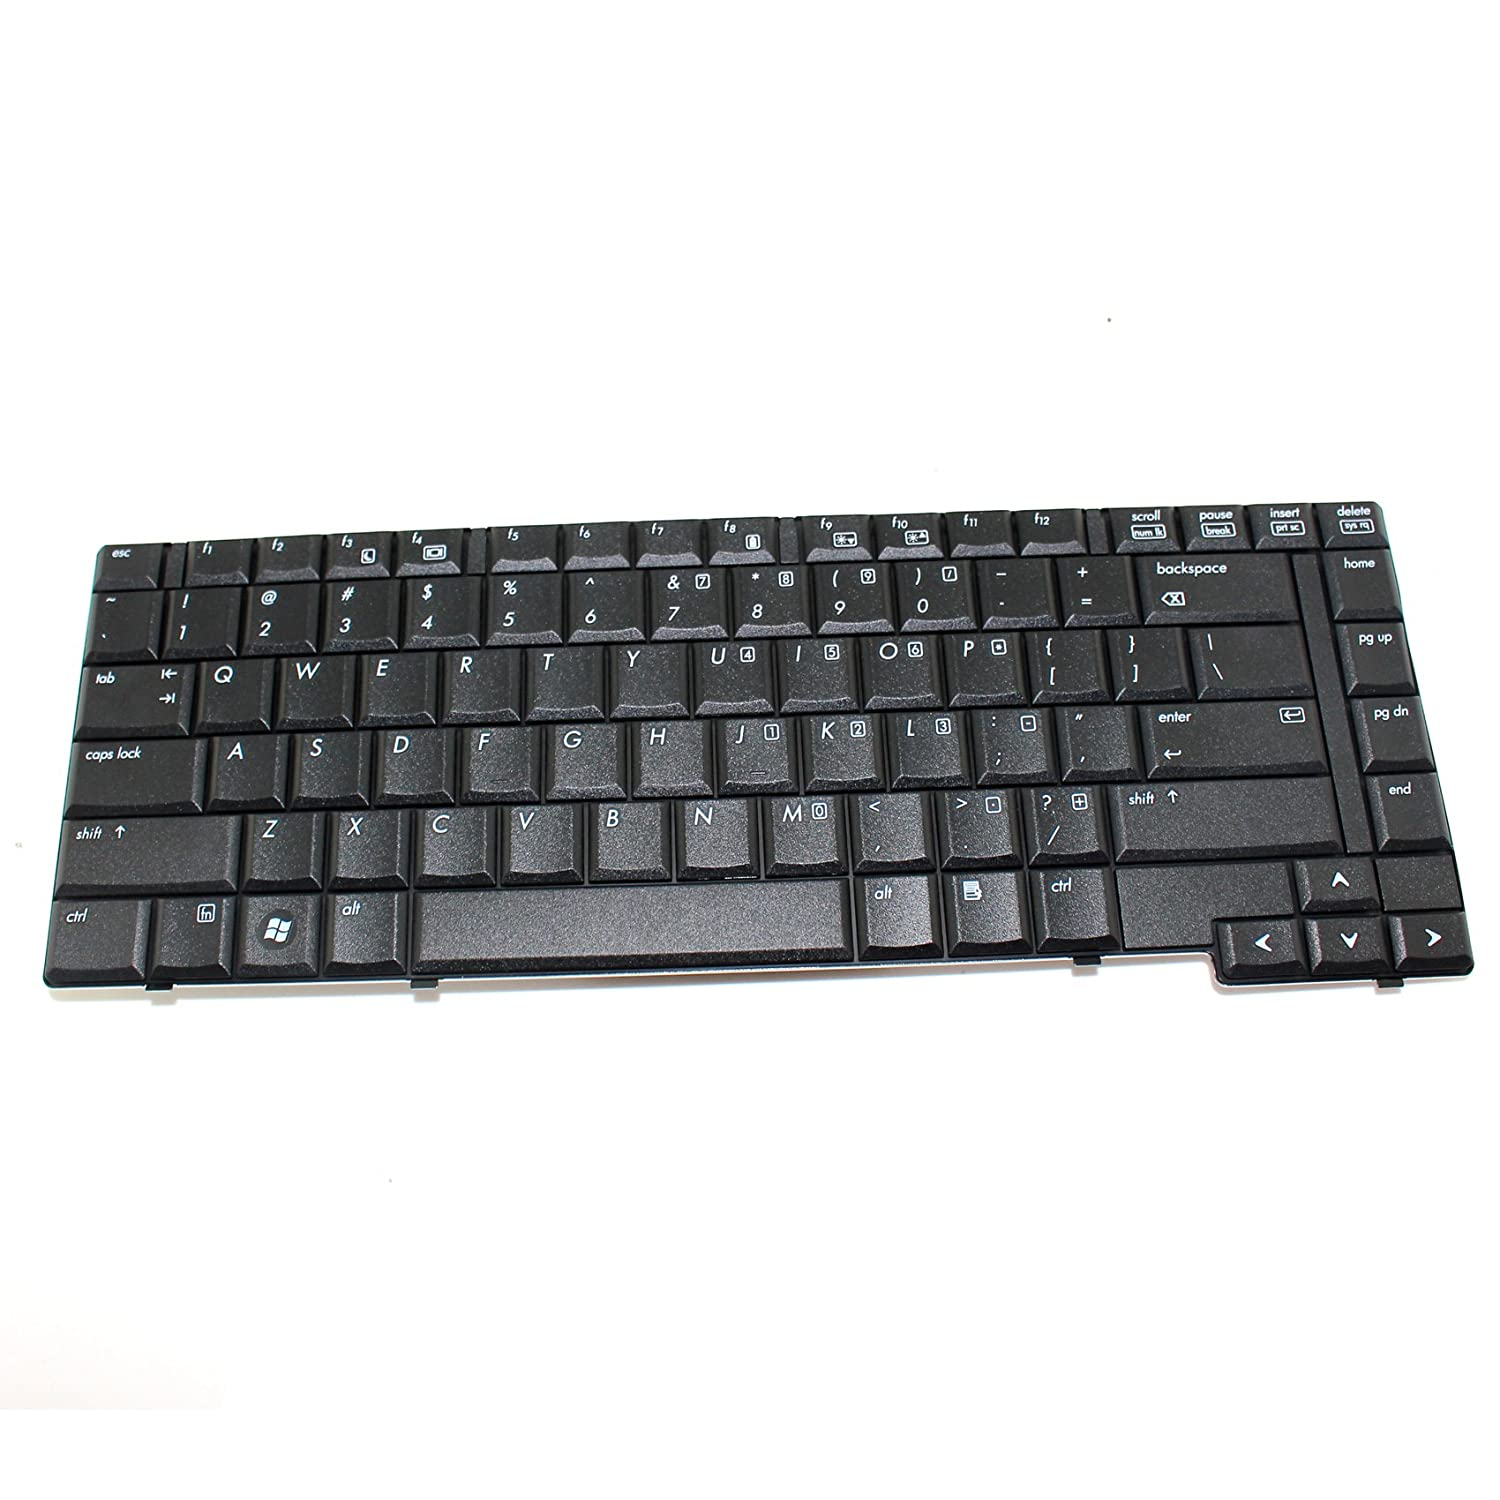 Generic New Black Laptop US Keyboard for HP Compaq 6530B 6535B Series Replacement Parts new laptop us keyboard for sony vgn sz series us layout black 148023361 147964792